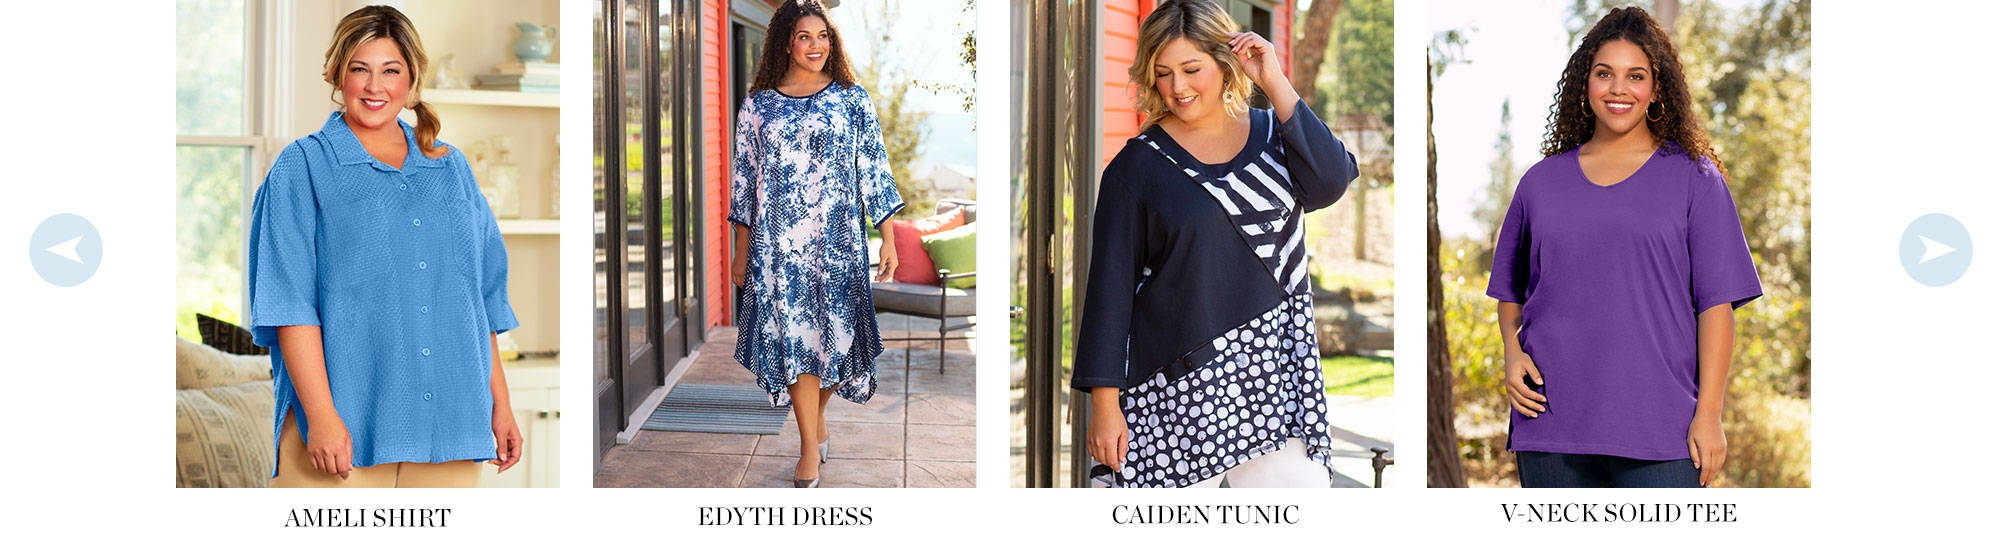 4X to 8X Women's Plus Size Clothing - Shop Summer New Arrivals